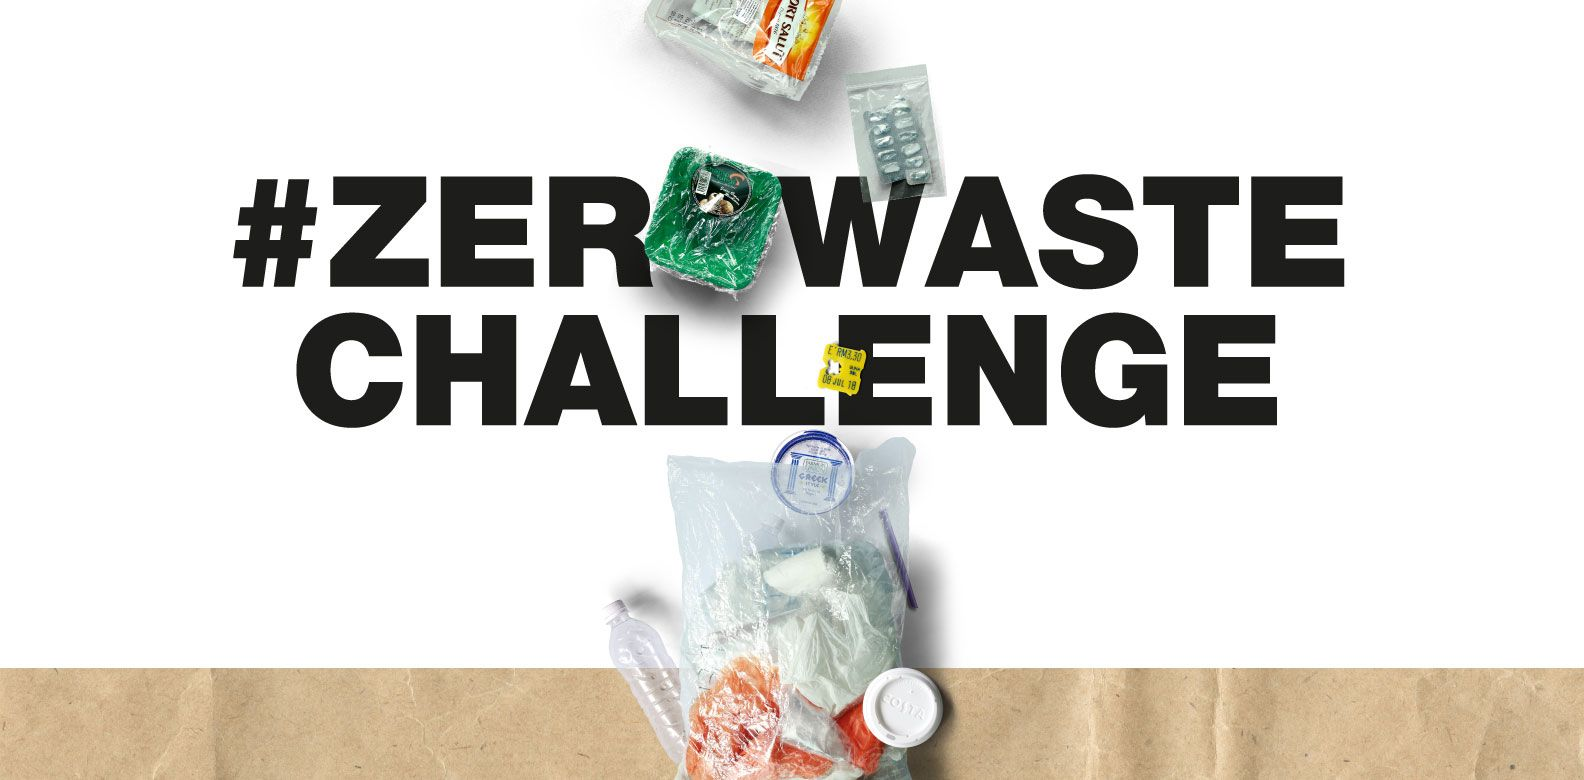 Dare You Accept The #Zerowaste Challenge? 3 Malaysians Take Up The Test For Two Weeks